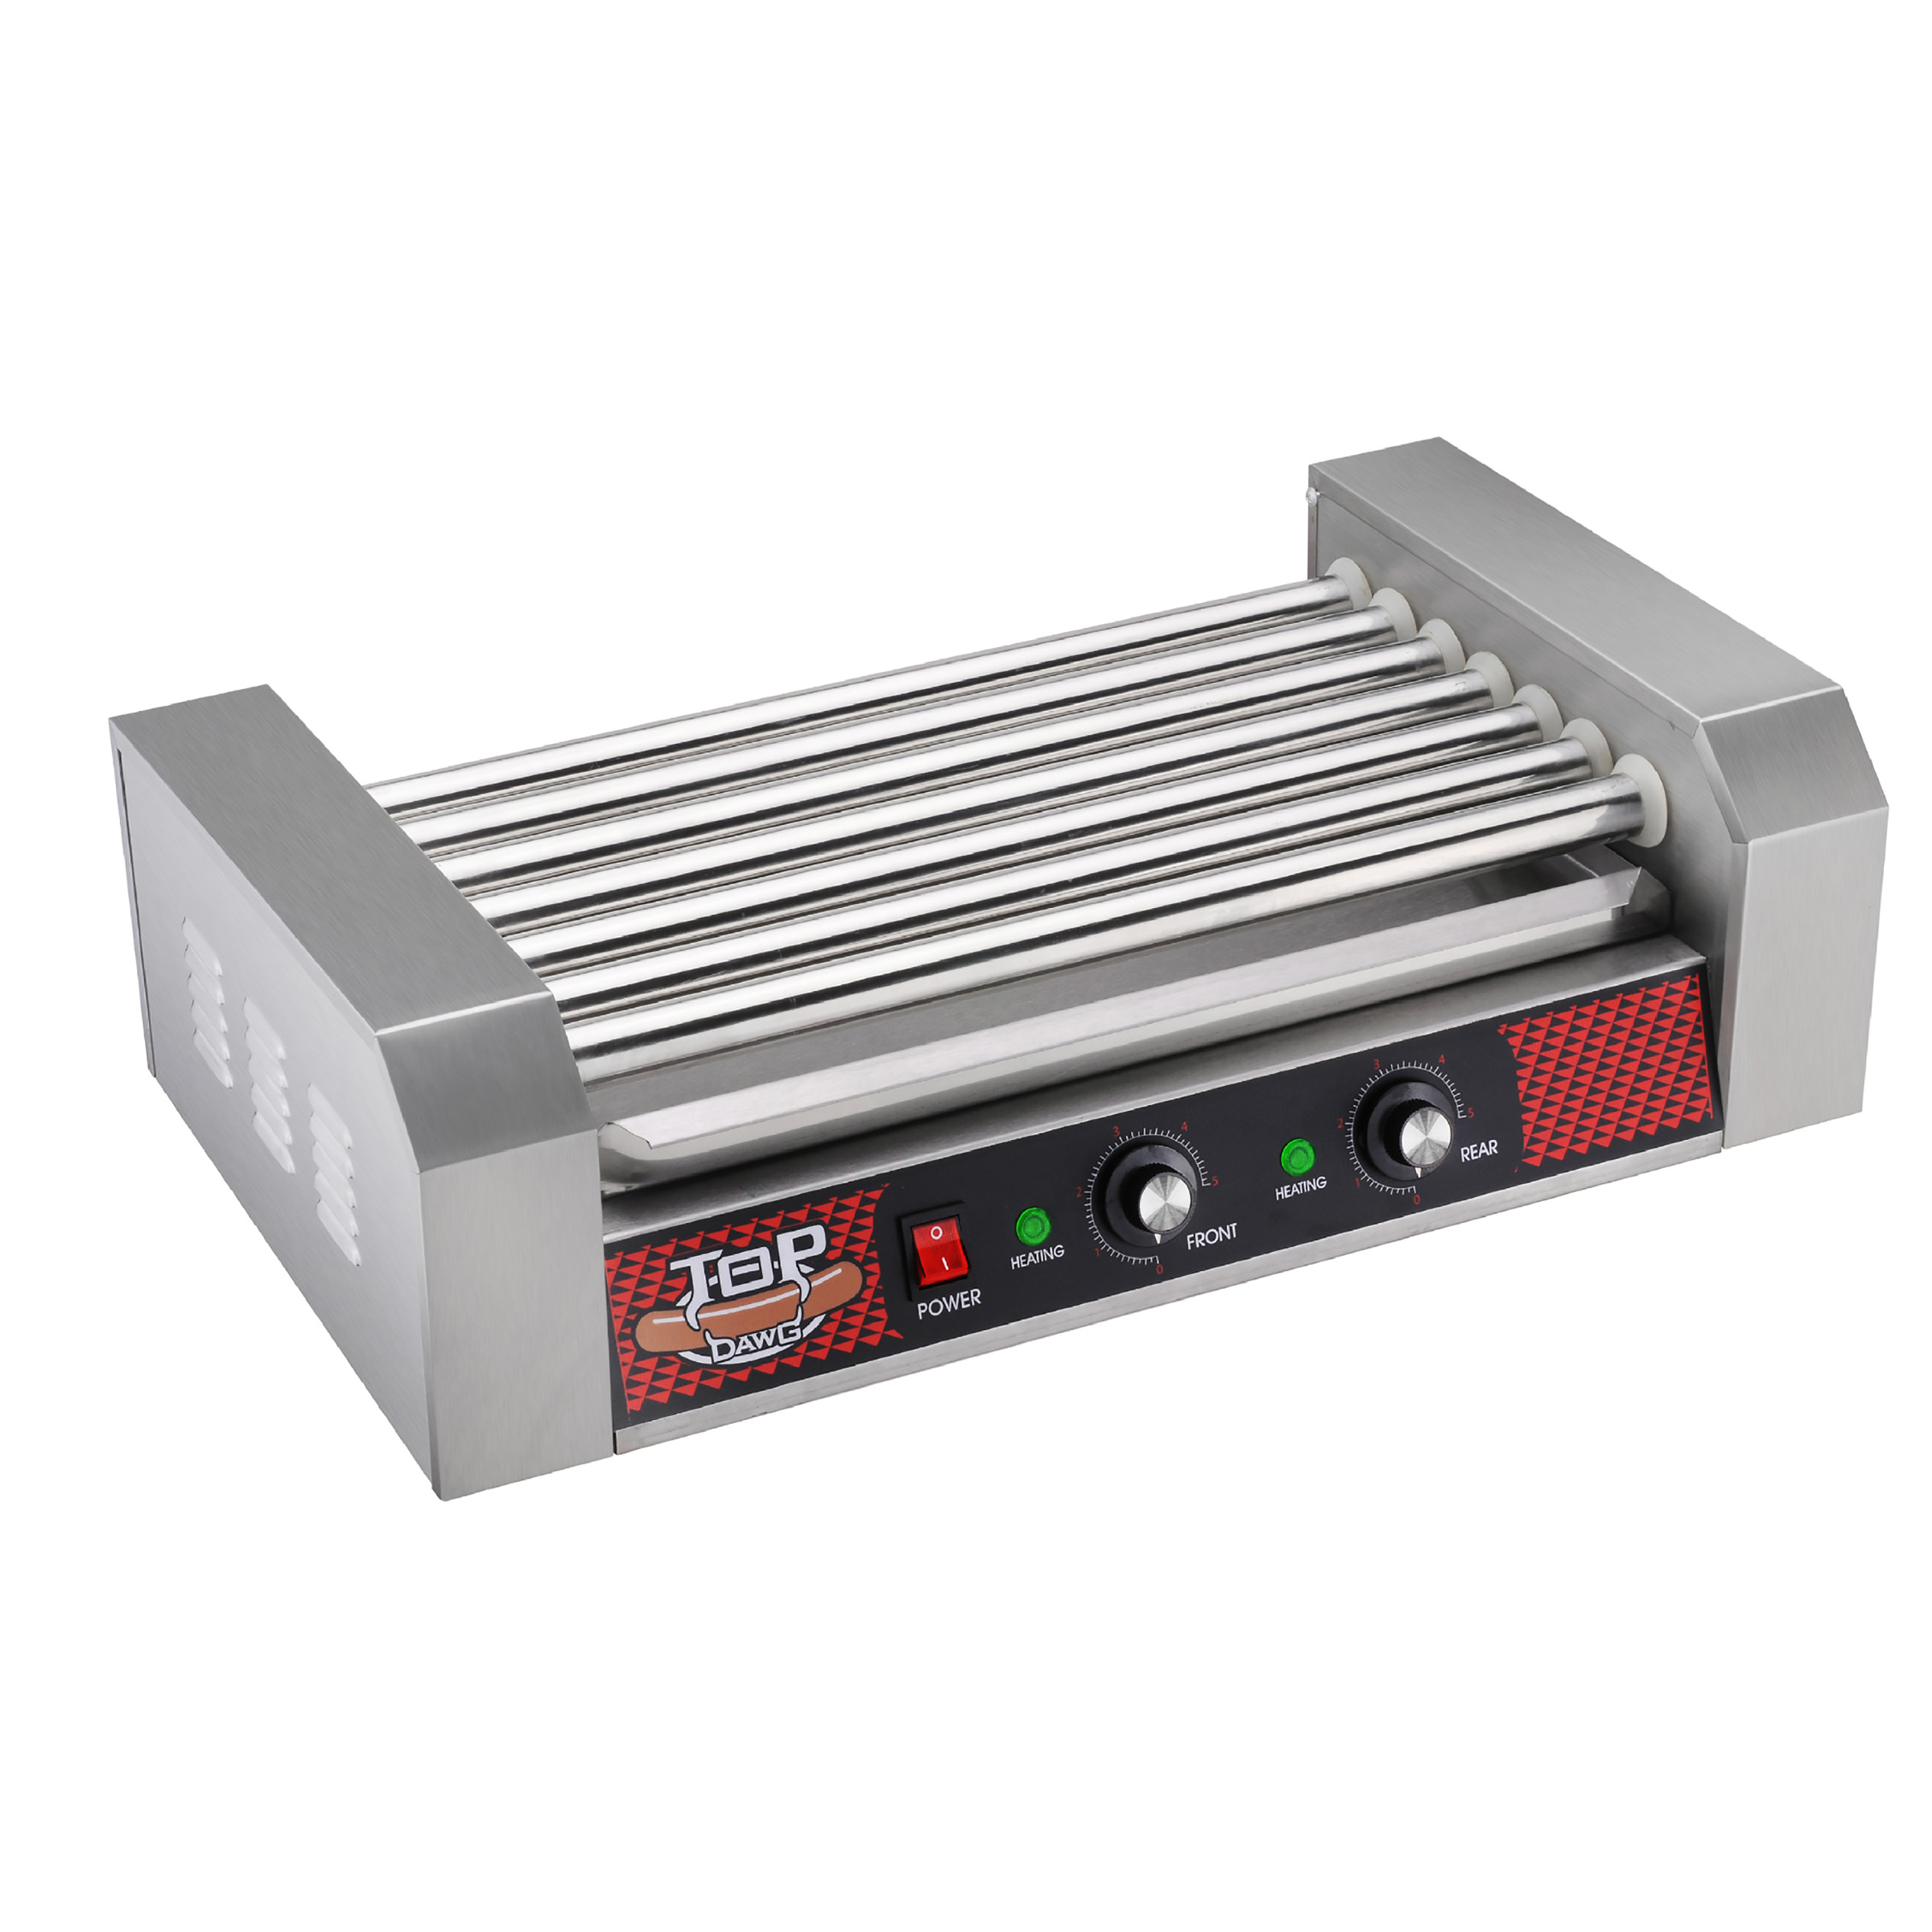 Commercial Quality 18 Hot Dog 7 Roller Grilling Machine 1400Watts by Great Northern Popcorn